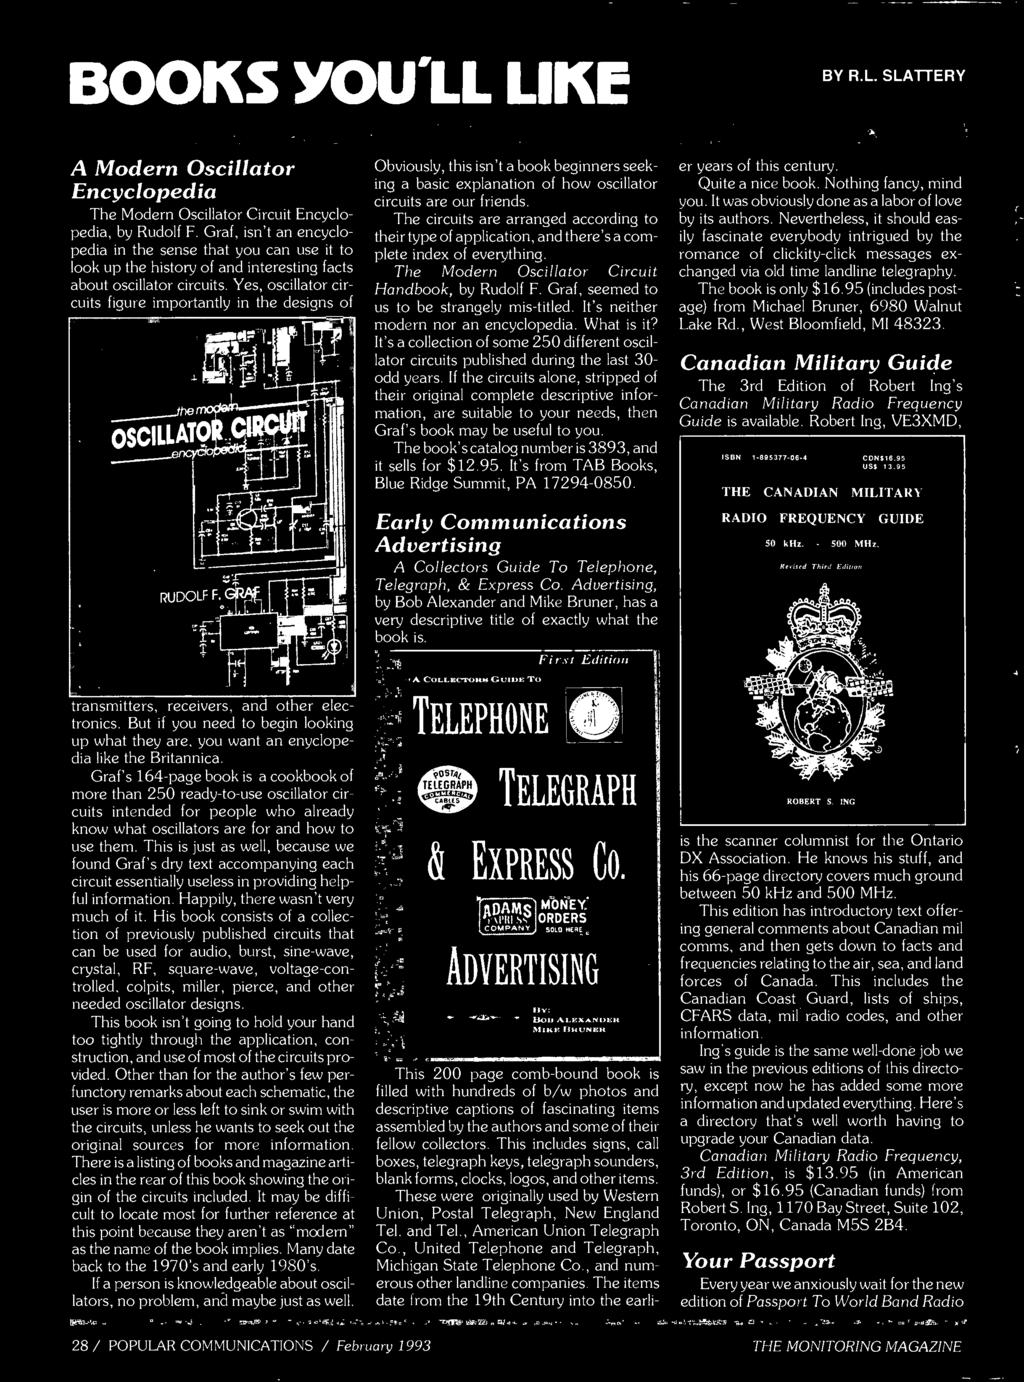 Satellite Pirates Whats A New Country Anyway Also In This Issue Figure 1113 Simple Voice Scrambling And Descrambling Circuit At Yes Oscillator Circuits Importantly The Designs Of Transmitters Receivers Other